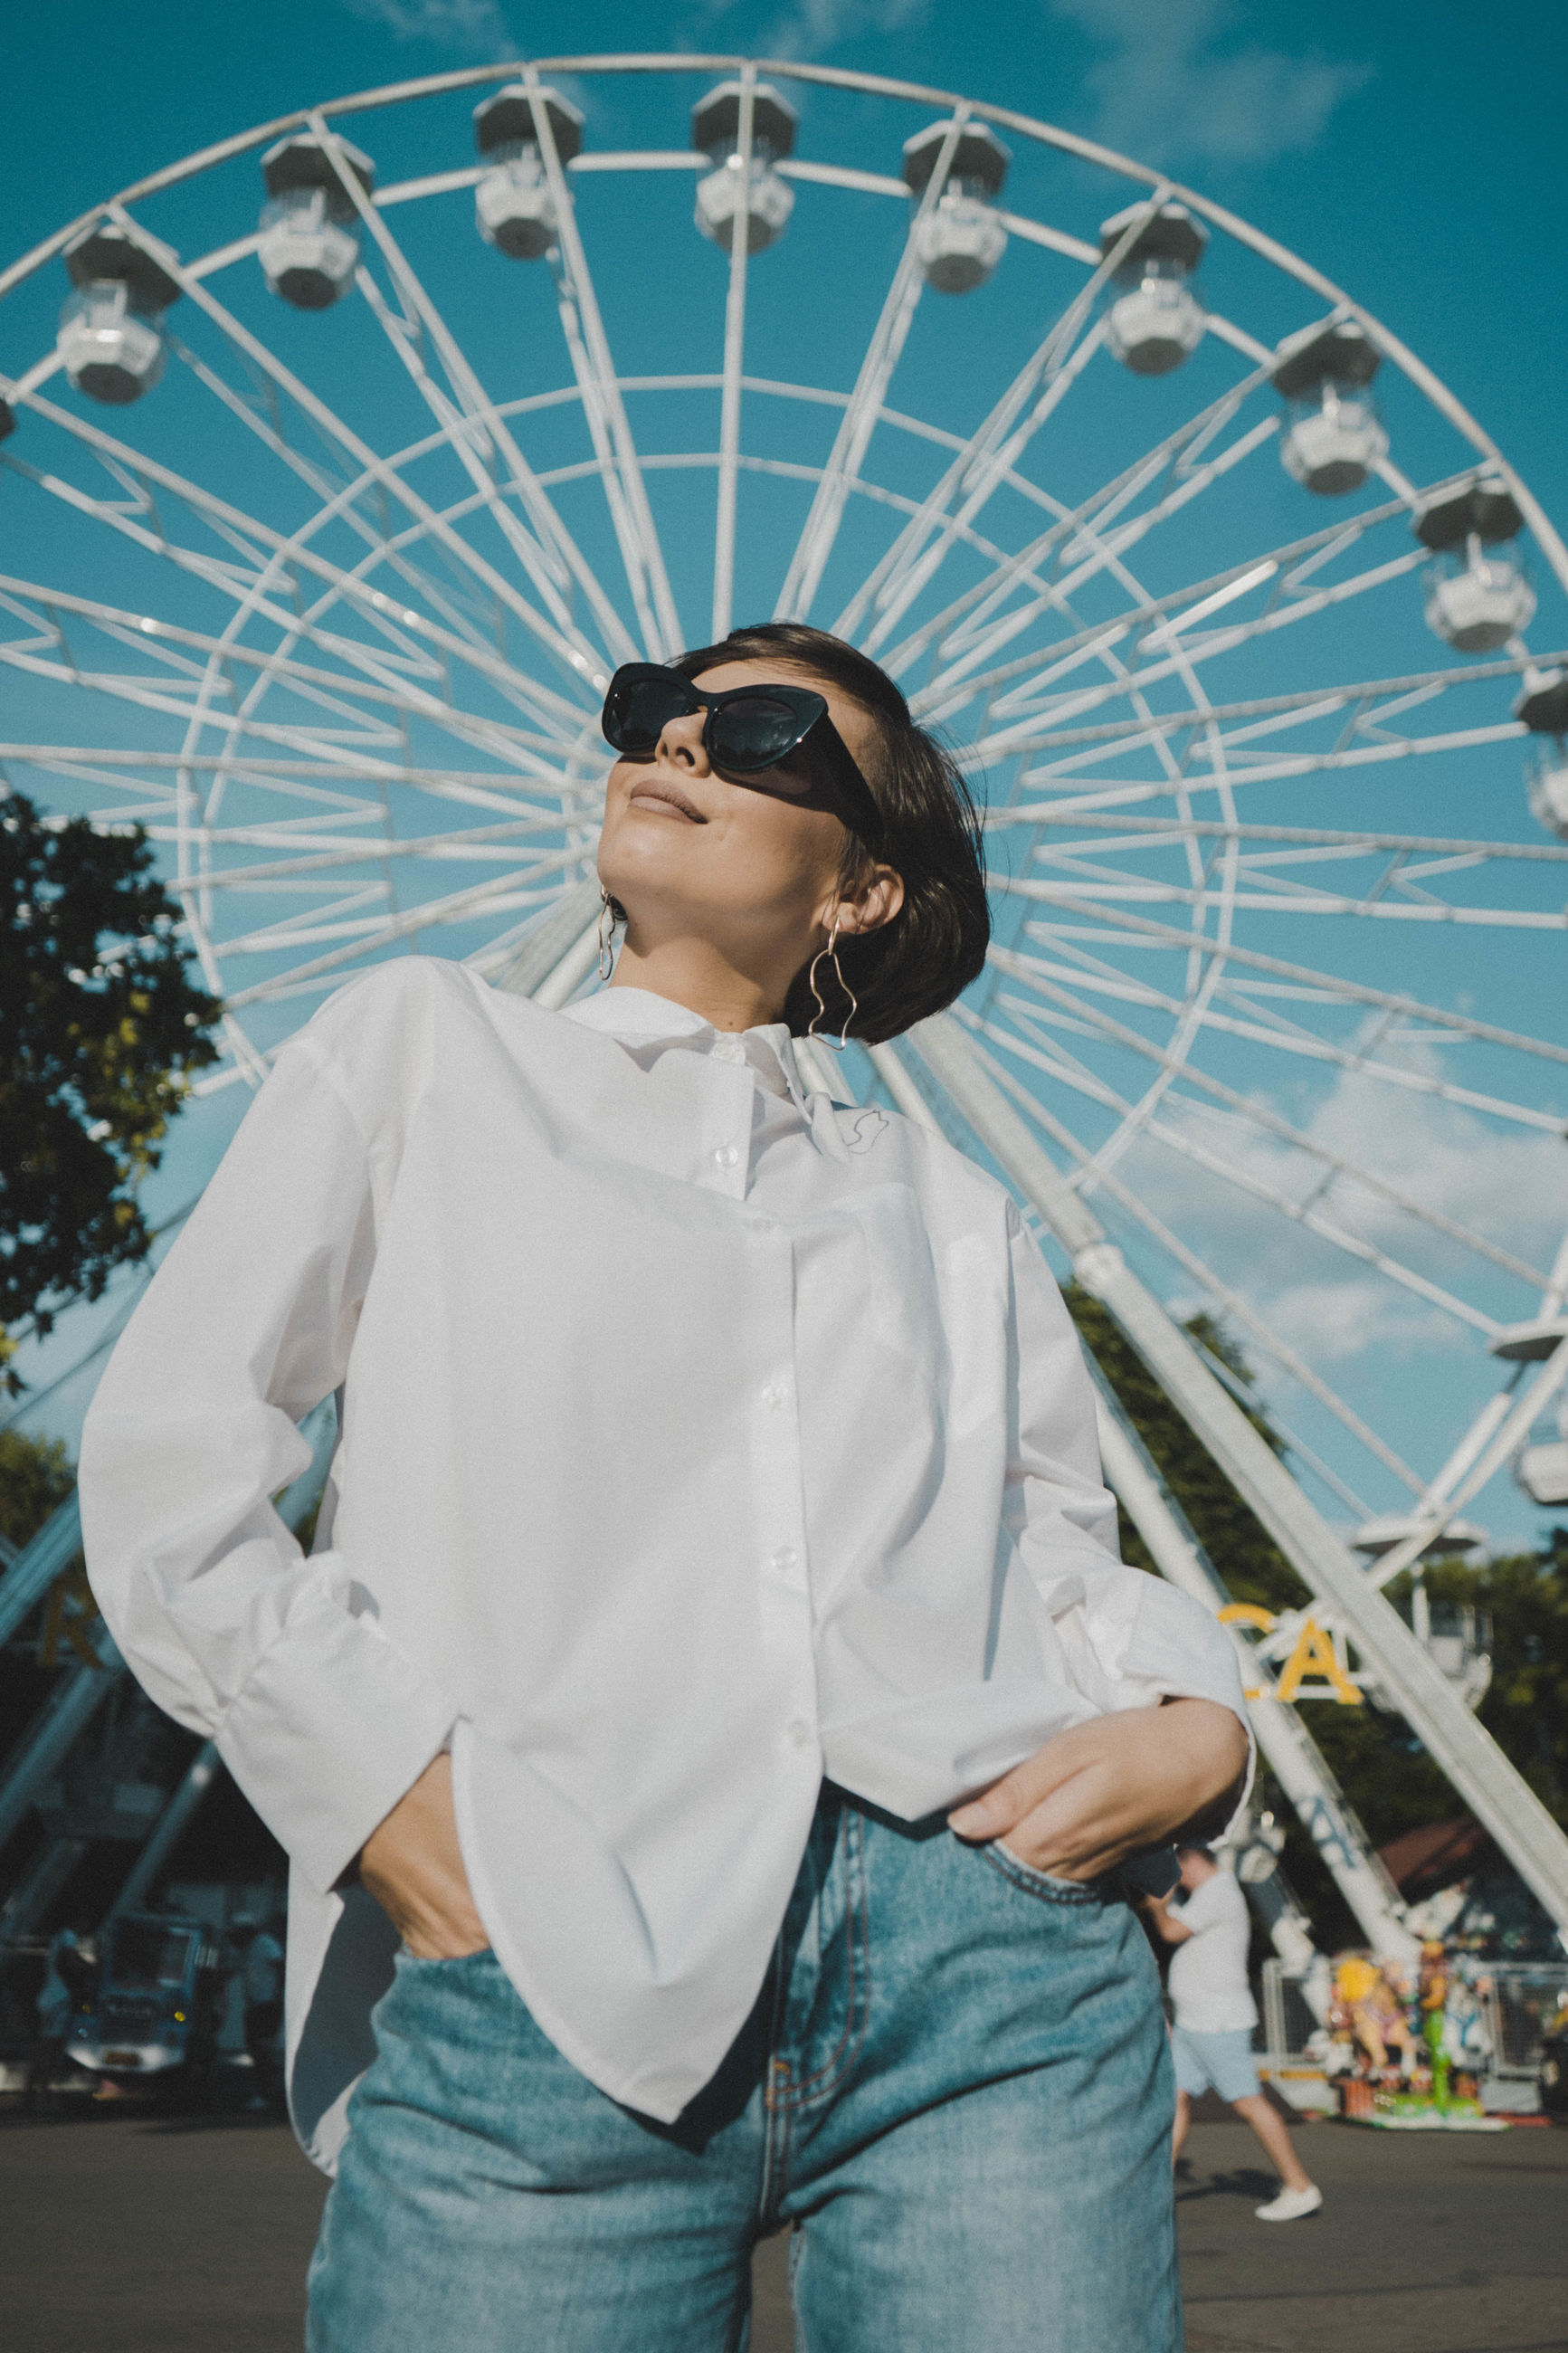 amusement park, amusement park ride, three quarter length, front view, standing, leisure activity, ferris wheel, one person, casual clothing, real people, arts culture and entertainment, young adult, women, lifestyles, females, glasses, clothing, holding, contemplation